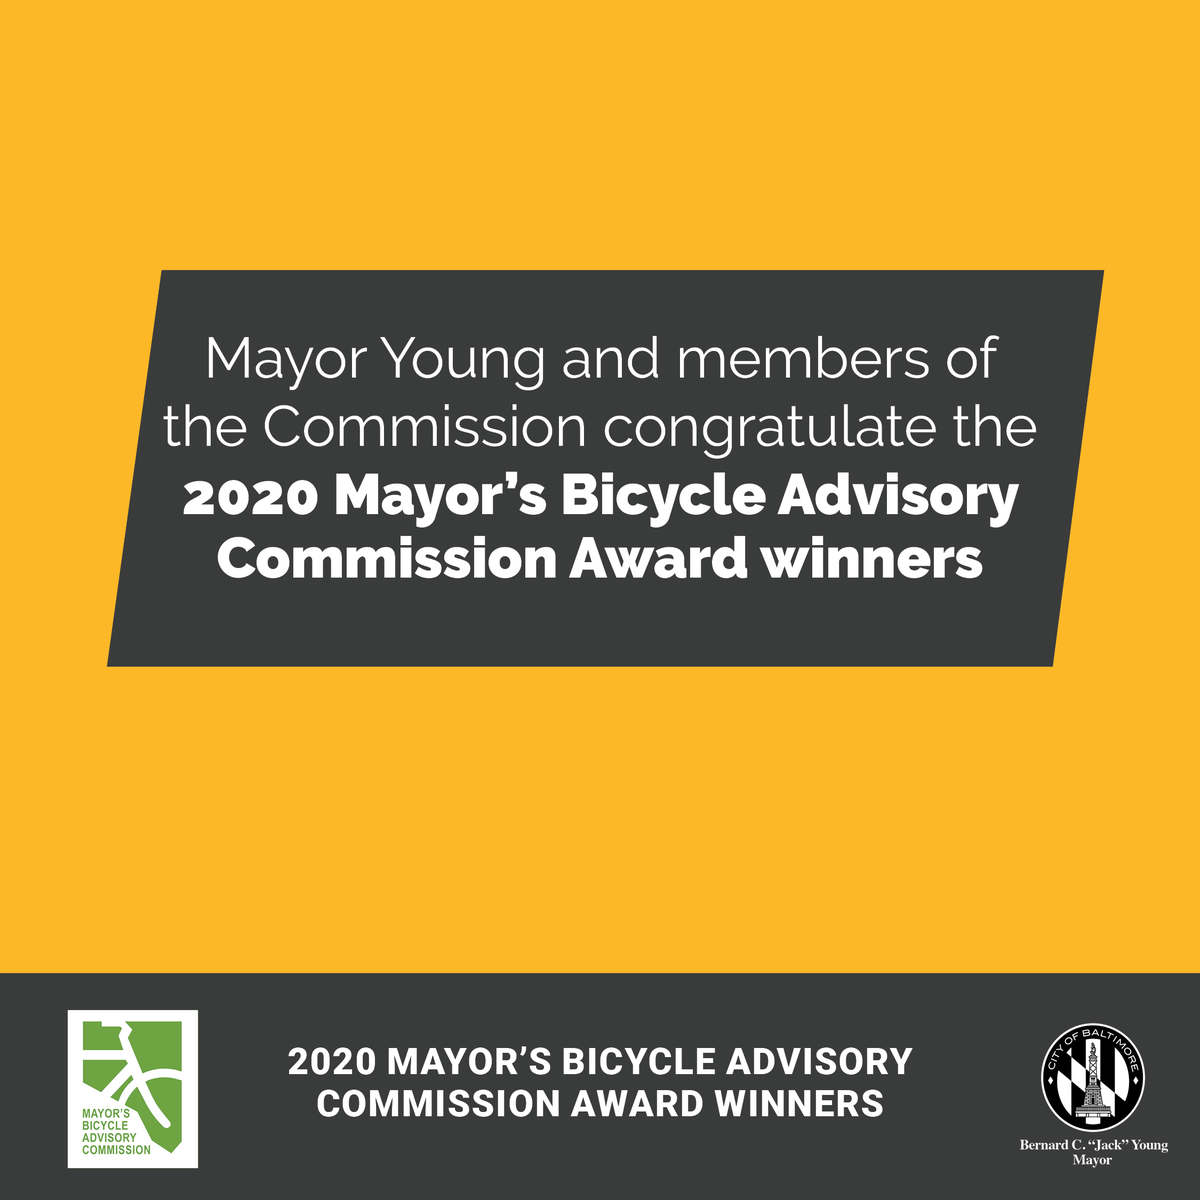 @mayorbcyoung congratulates all 2020 Mayor's Bicycle Advisory Commission award recipients for their contributions to the City of Baltimore. The first award goes to Baltimore Bicycle Works as they are recognized for this year's 2020 Business Award.